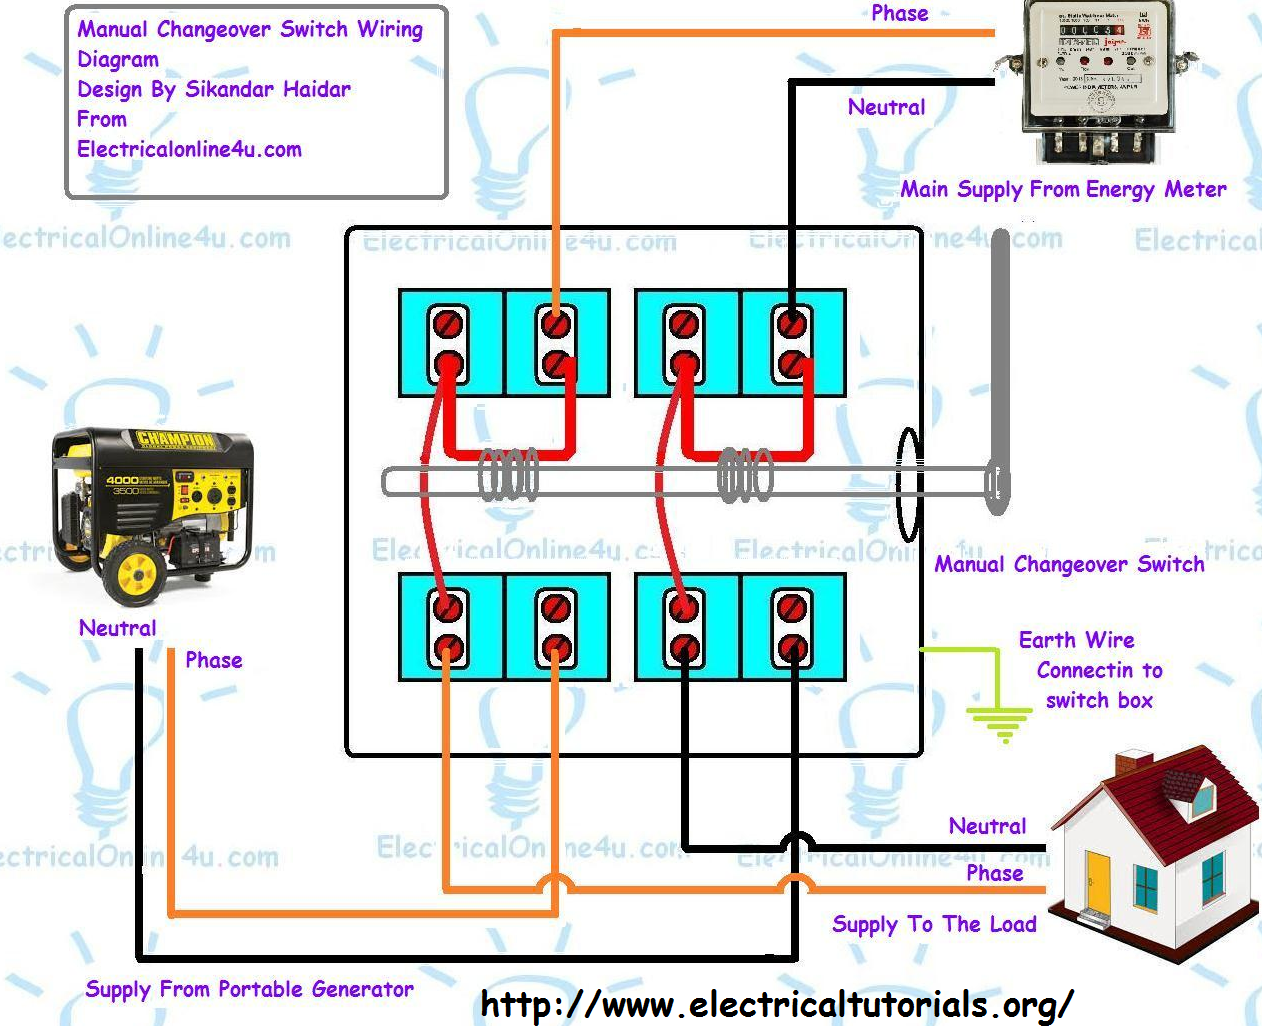 Portable Generator Changeover Switch Wiring Diagram ... on 3 phase magnetic contactor, 3 phase current transformer, 3 phase manual transfer switch,